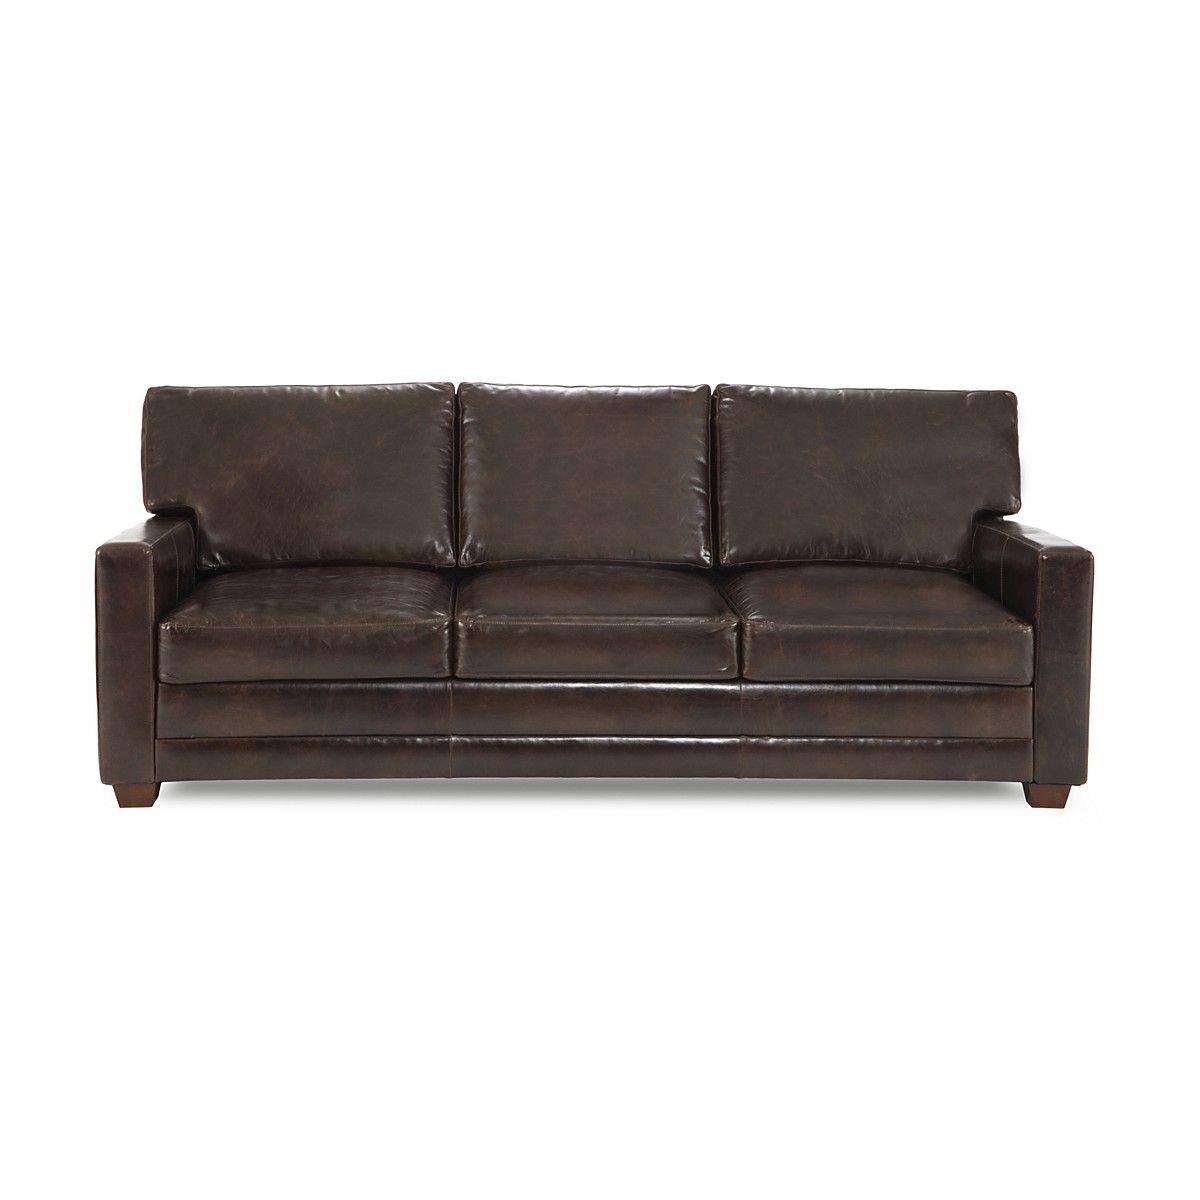 Dinner Sofa Bloomingdale S Lawson Sofa Bloomingdale S Living Room Sofa